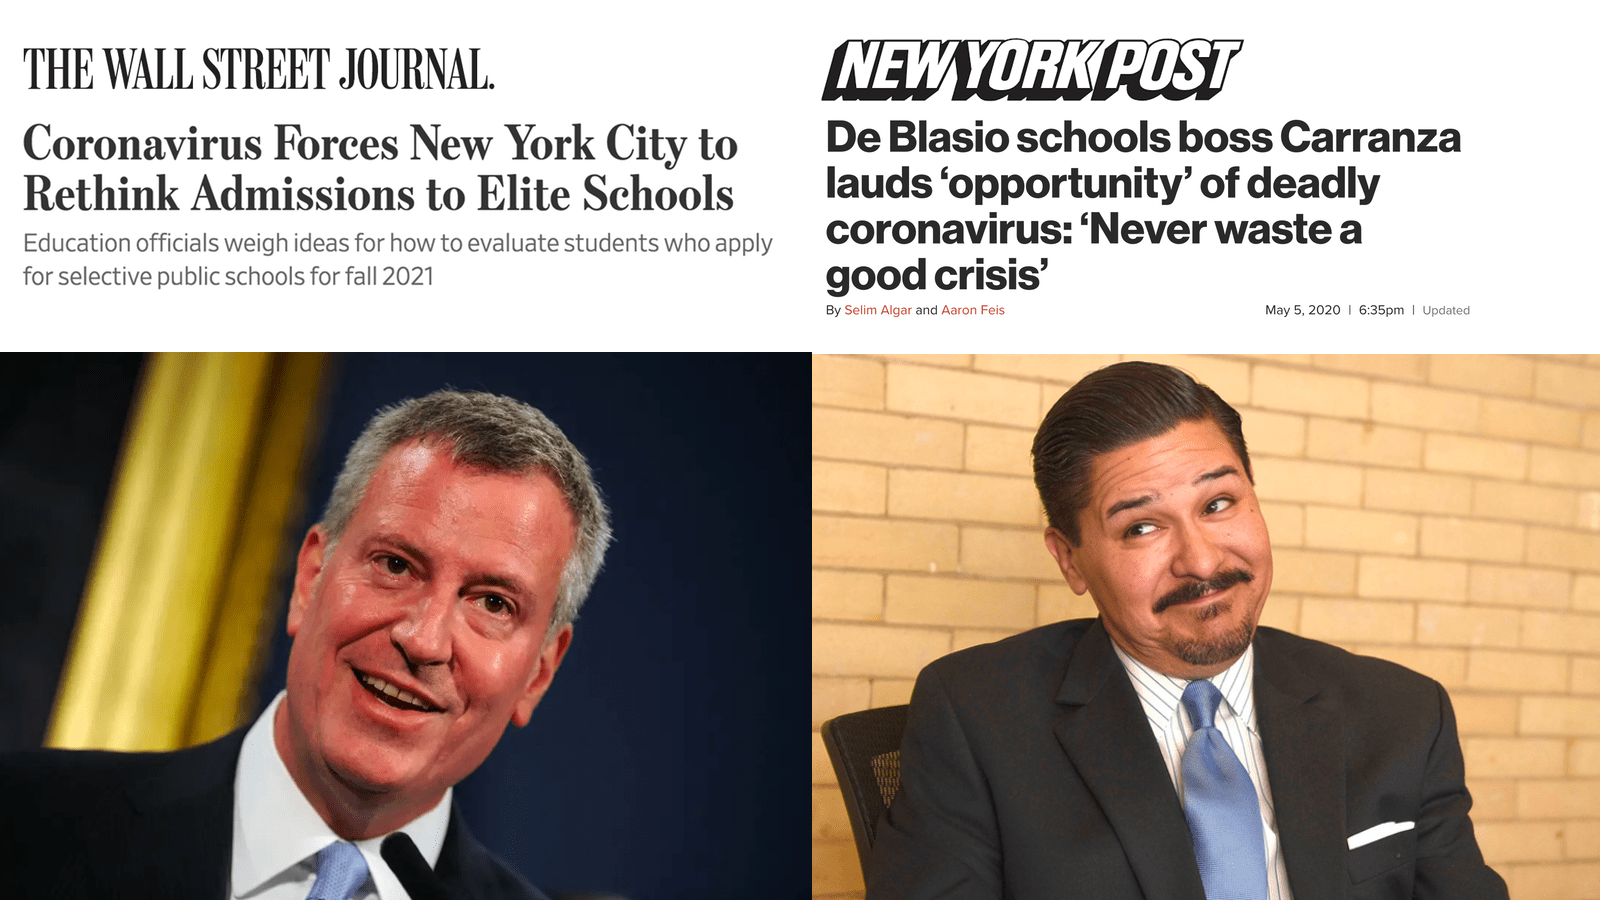 STOP CARRANZA FROM USING THE COVID CRISIS TO OVERHAUL SCHOOL ADMISSIONS POLICIES